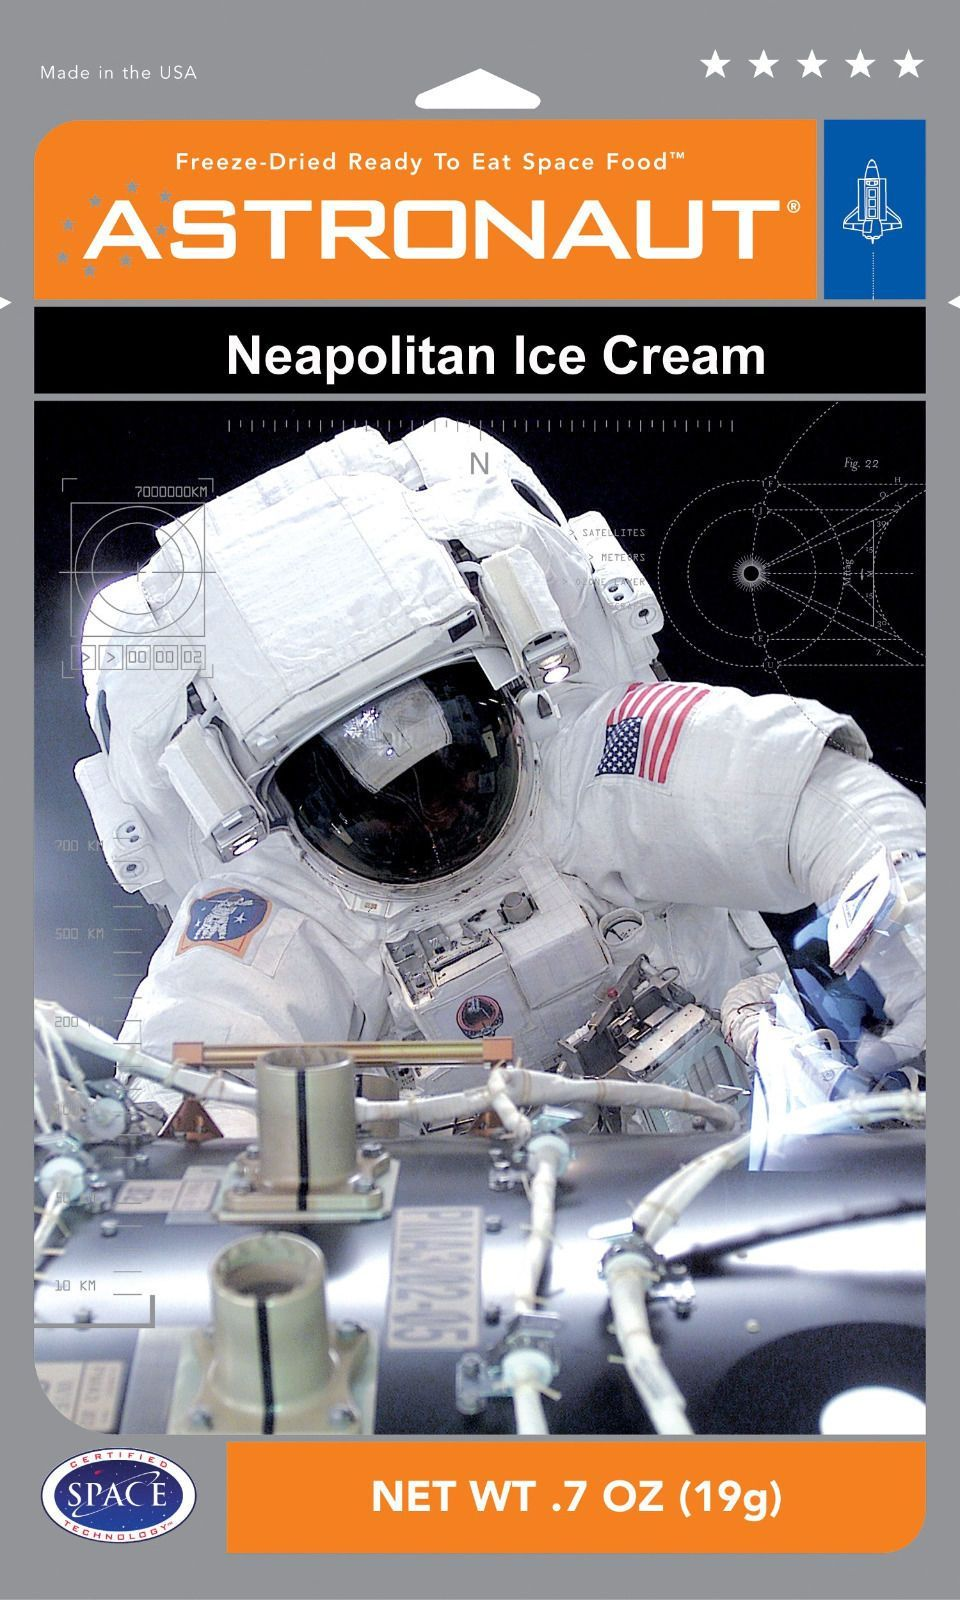 Details about 24 Pks Astronaut Ice Cream Neapolitan Ice ...